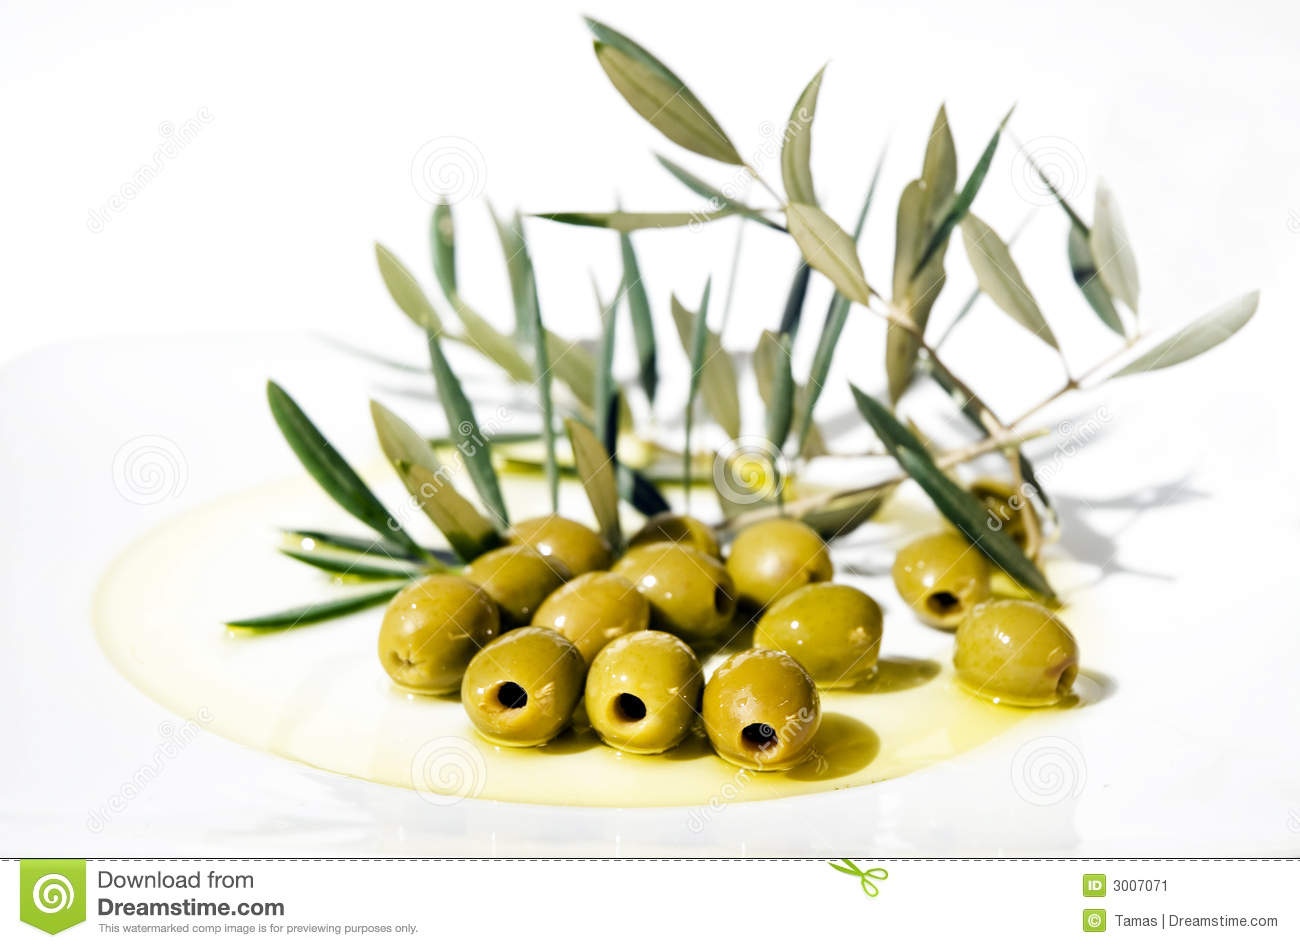 Olives and Olive Oil on plate